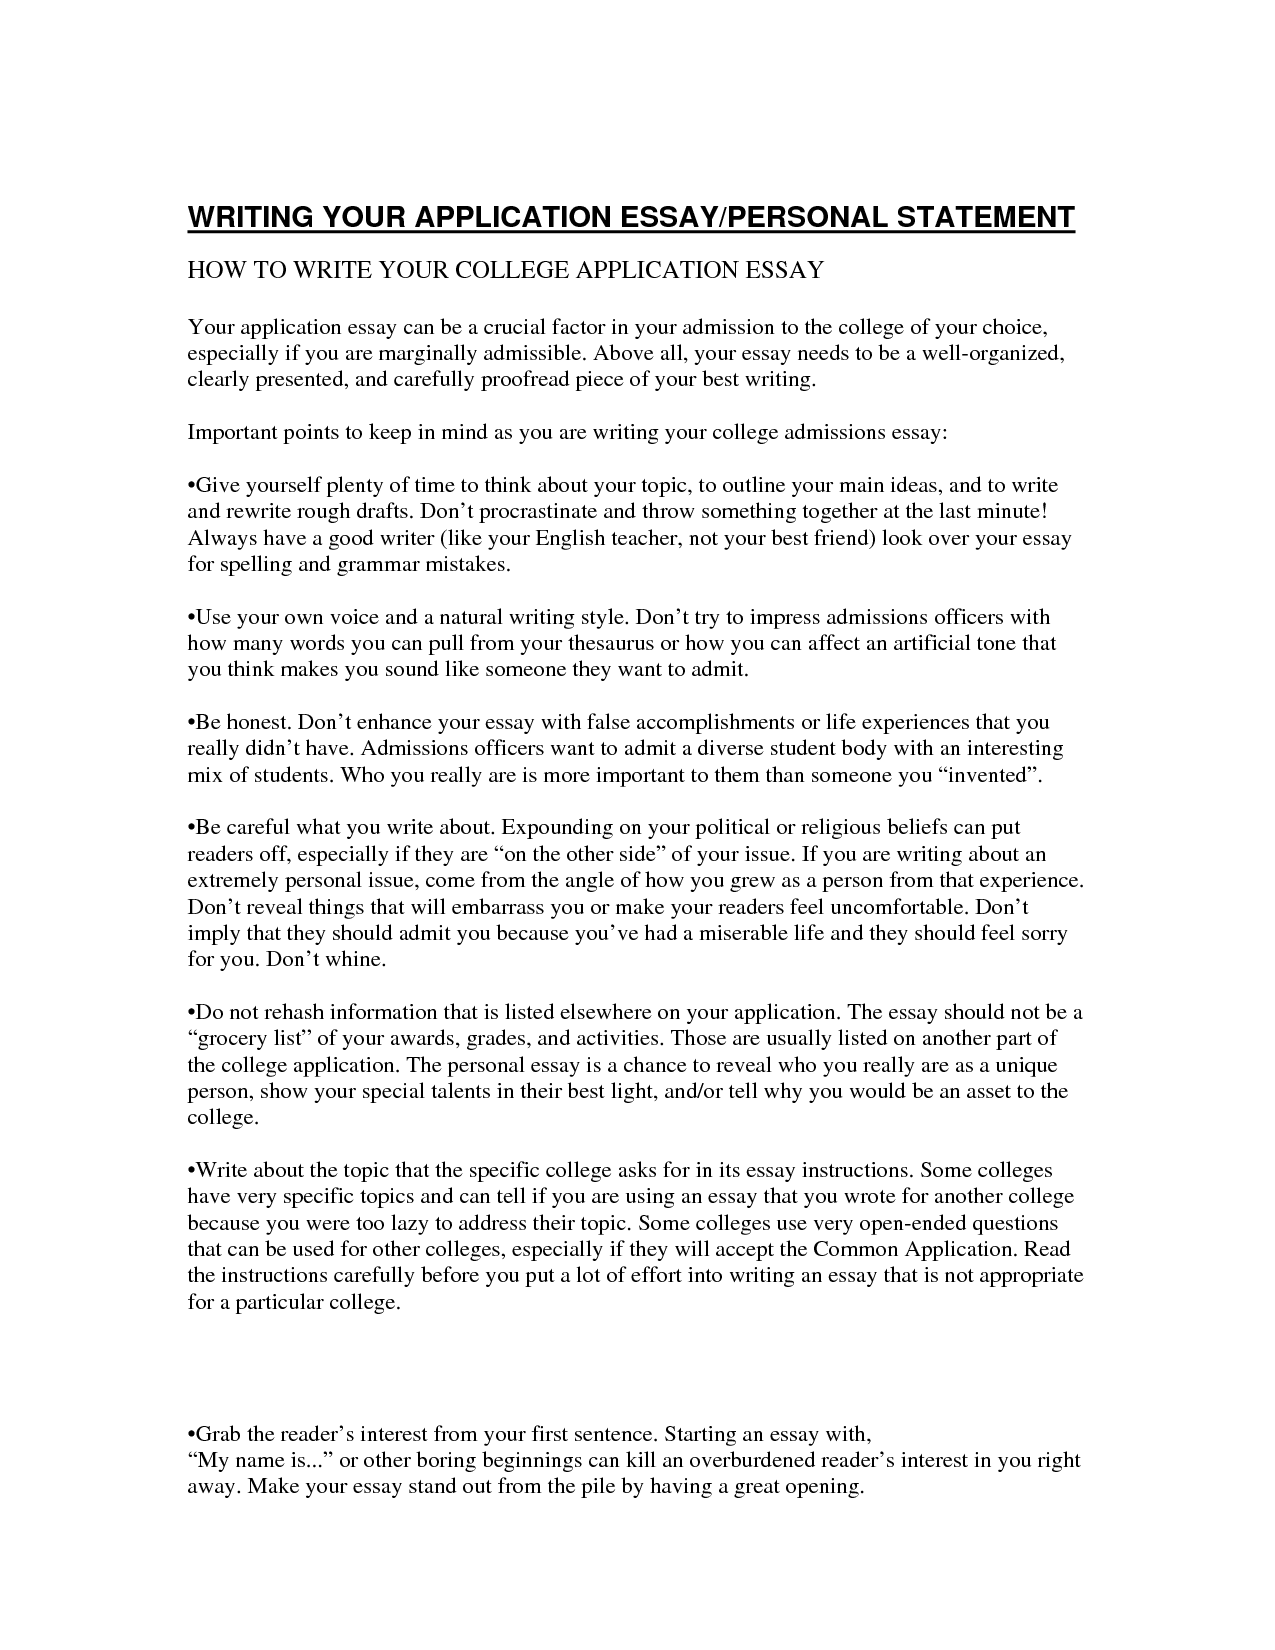 Personal essay for college sample